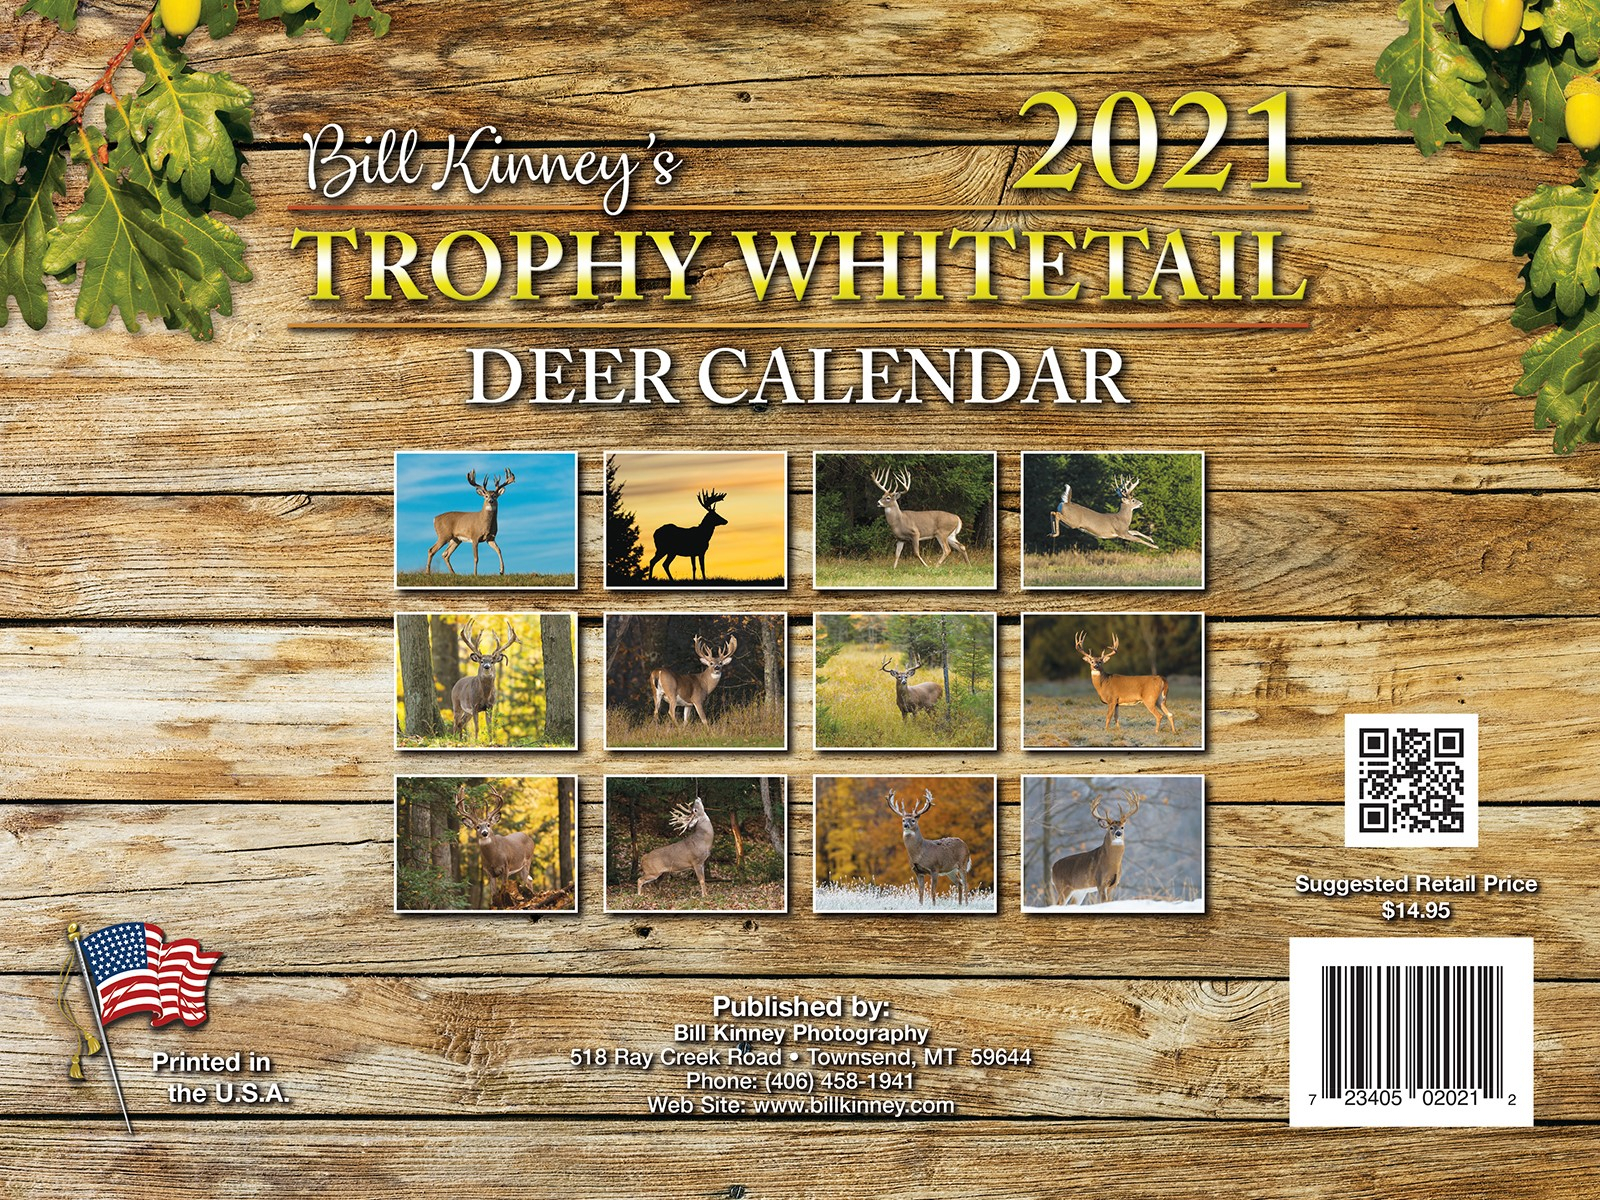 Billkinney with Whitetail Rut Calendar 2021